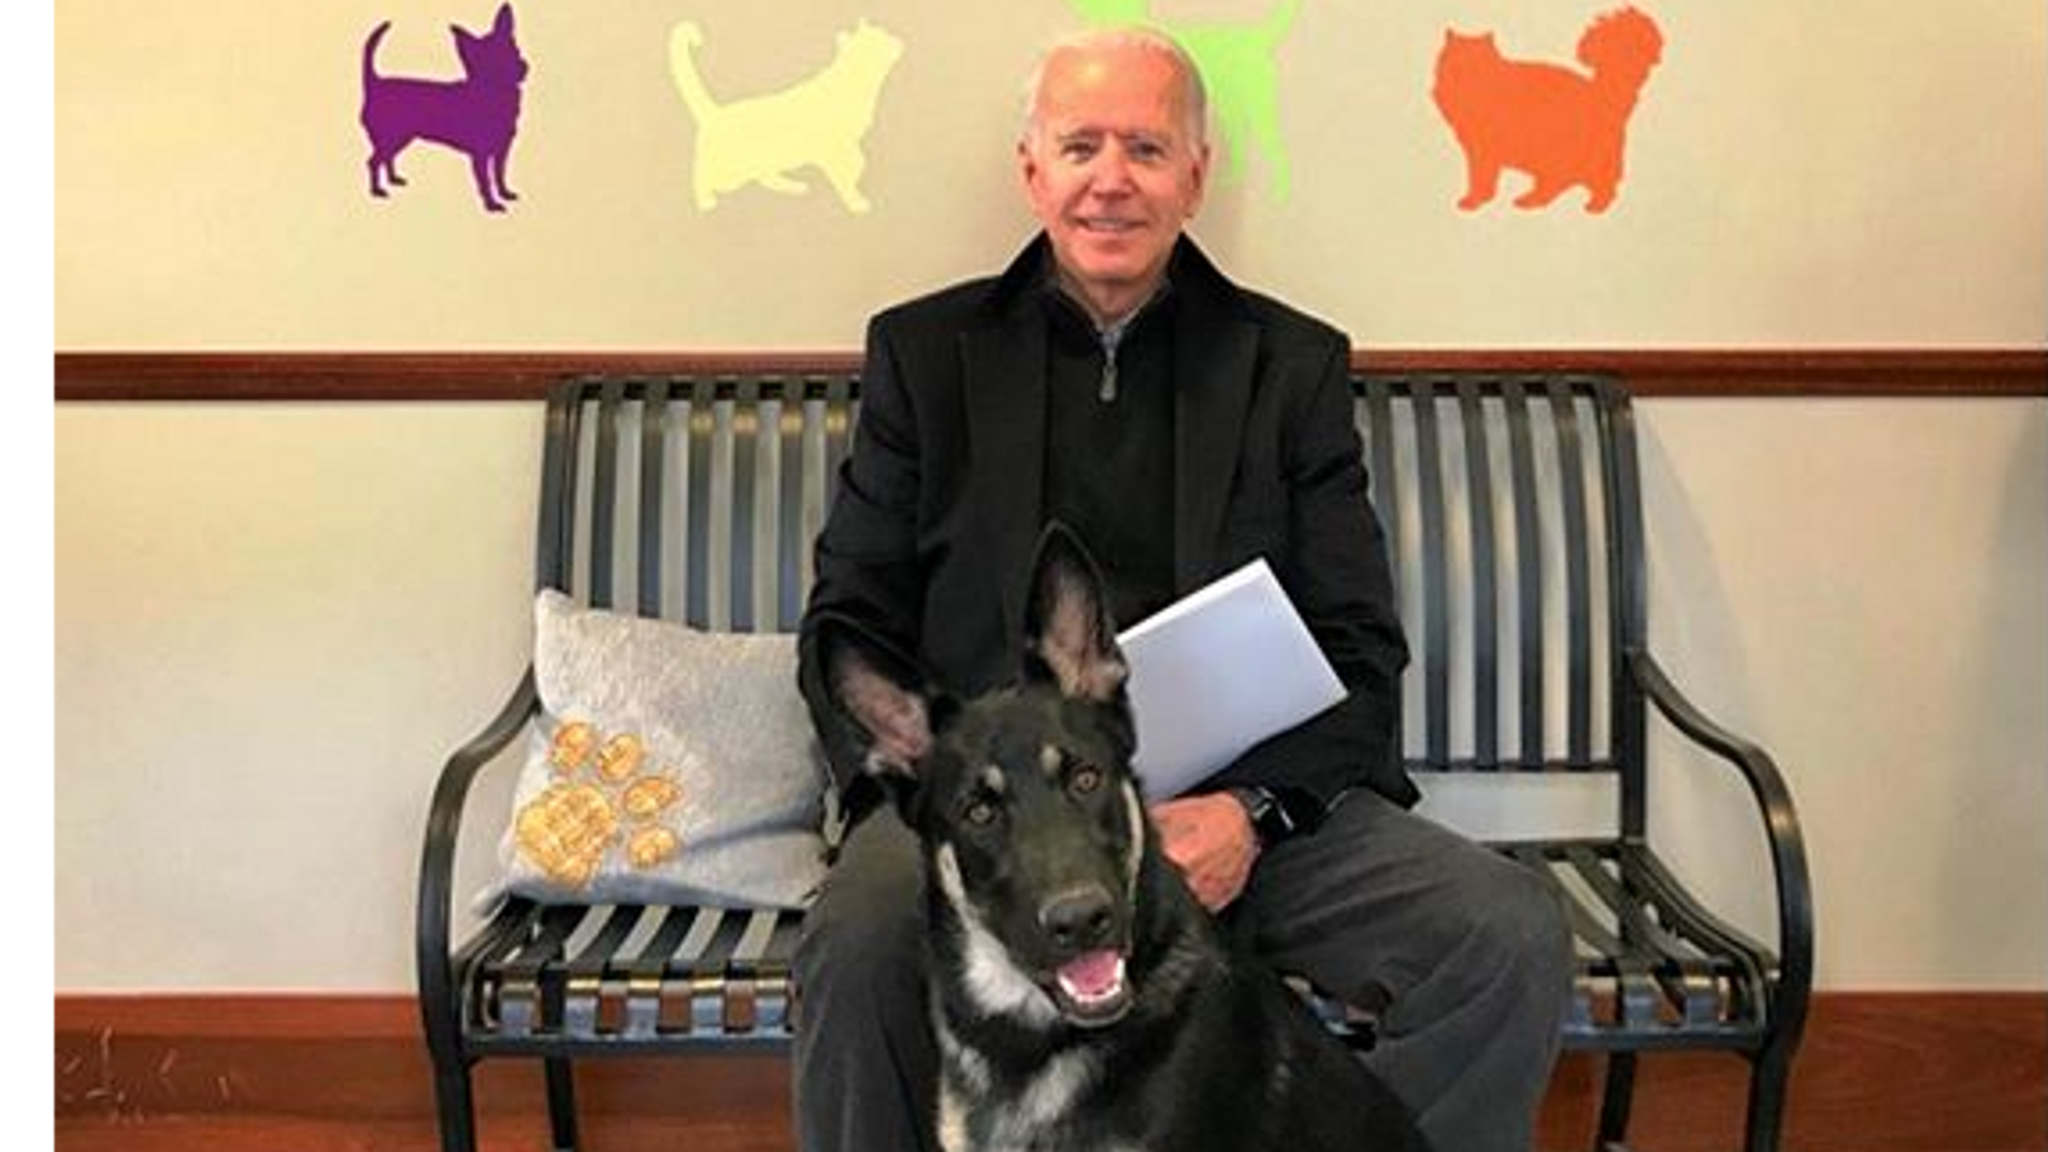 Joe Biden's dog Major set to make history - becoming first canine from  animal shelter to live in White House | World News | Sky News